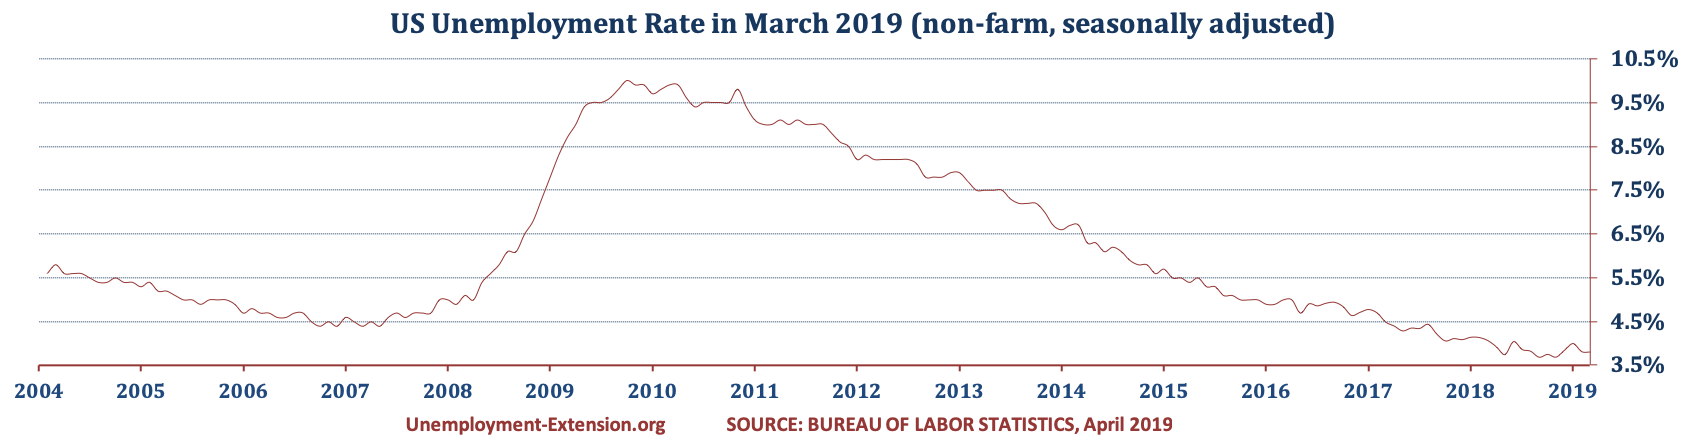 US Unemployment Rate in March of 2019 is 3.8% (February 2019 - 3.8%, January 2019 - 4.0%, and December 3.9% of 2018). There is no change in the US Unemployment rate due to the decrease in the number of short- and long-term unemployed offset by the increase in mid-term group.